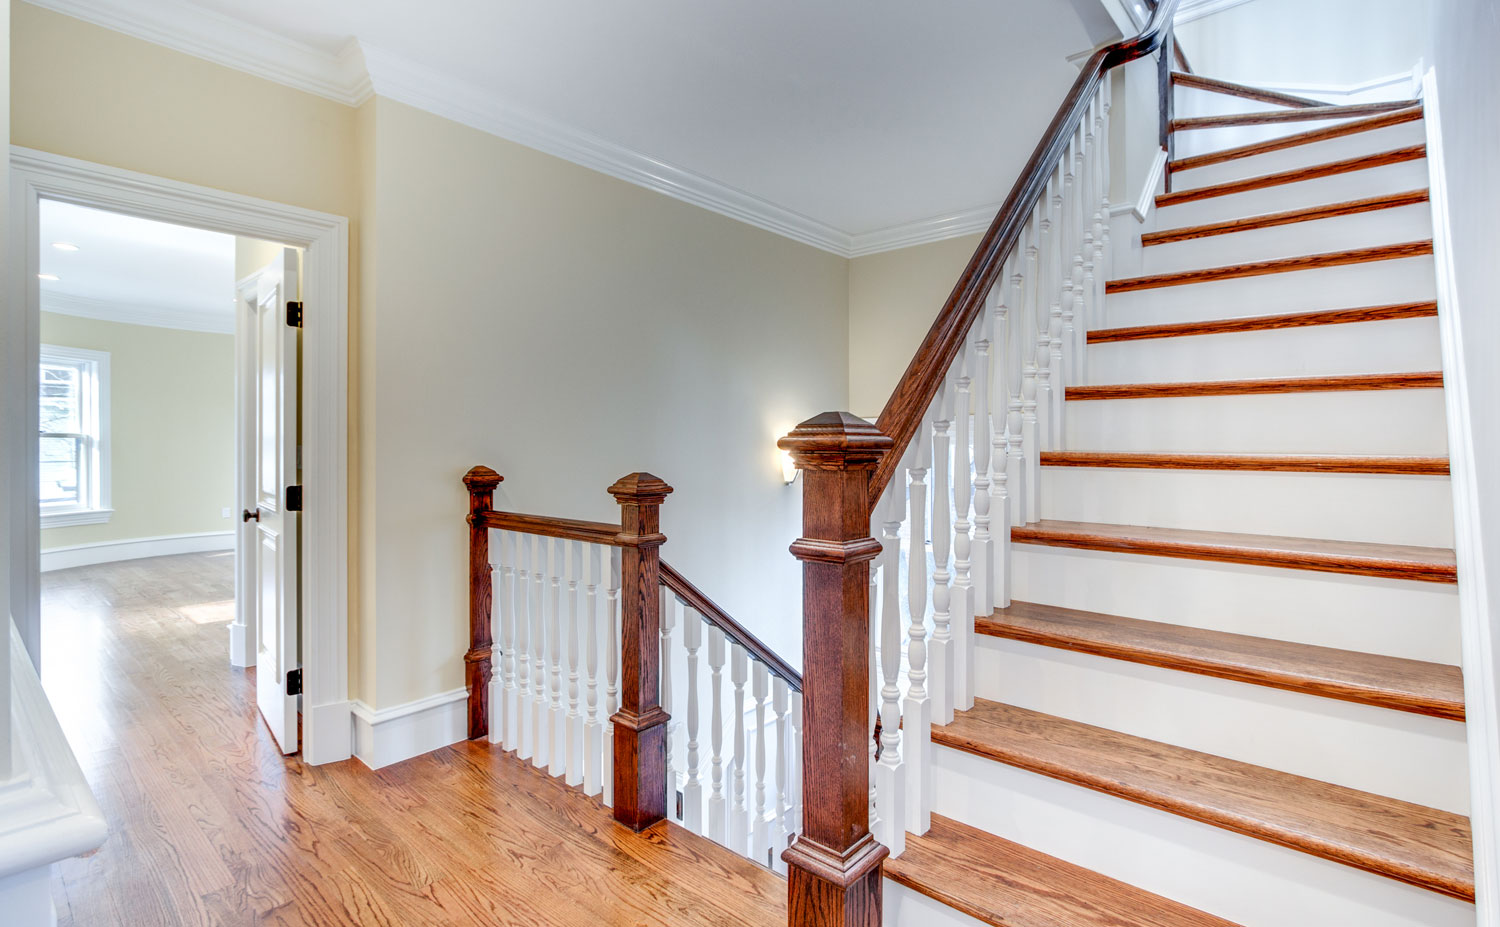 23_Upstairs-Hall-Staircase.jpg